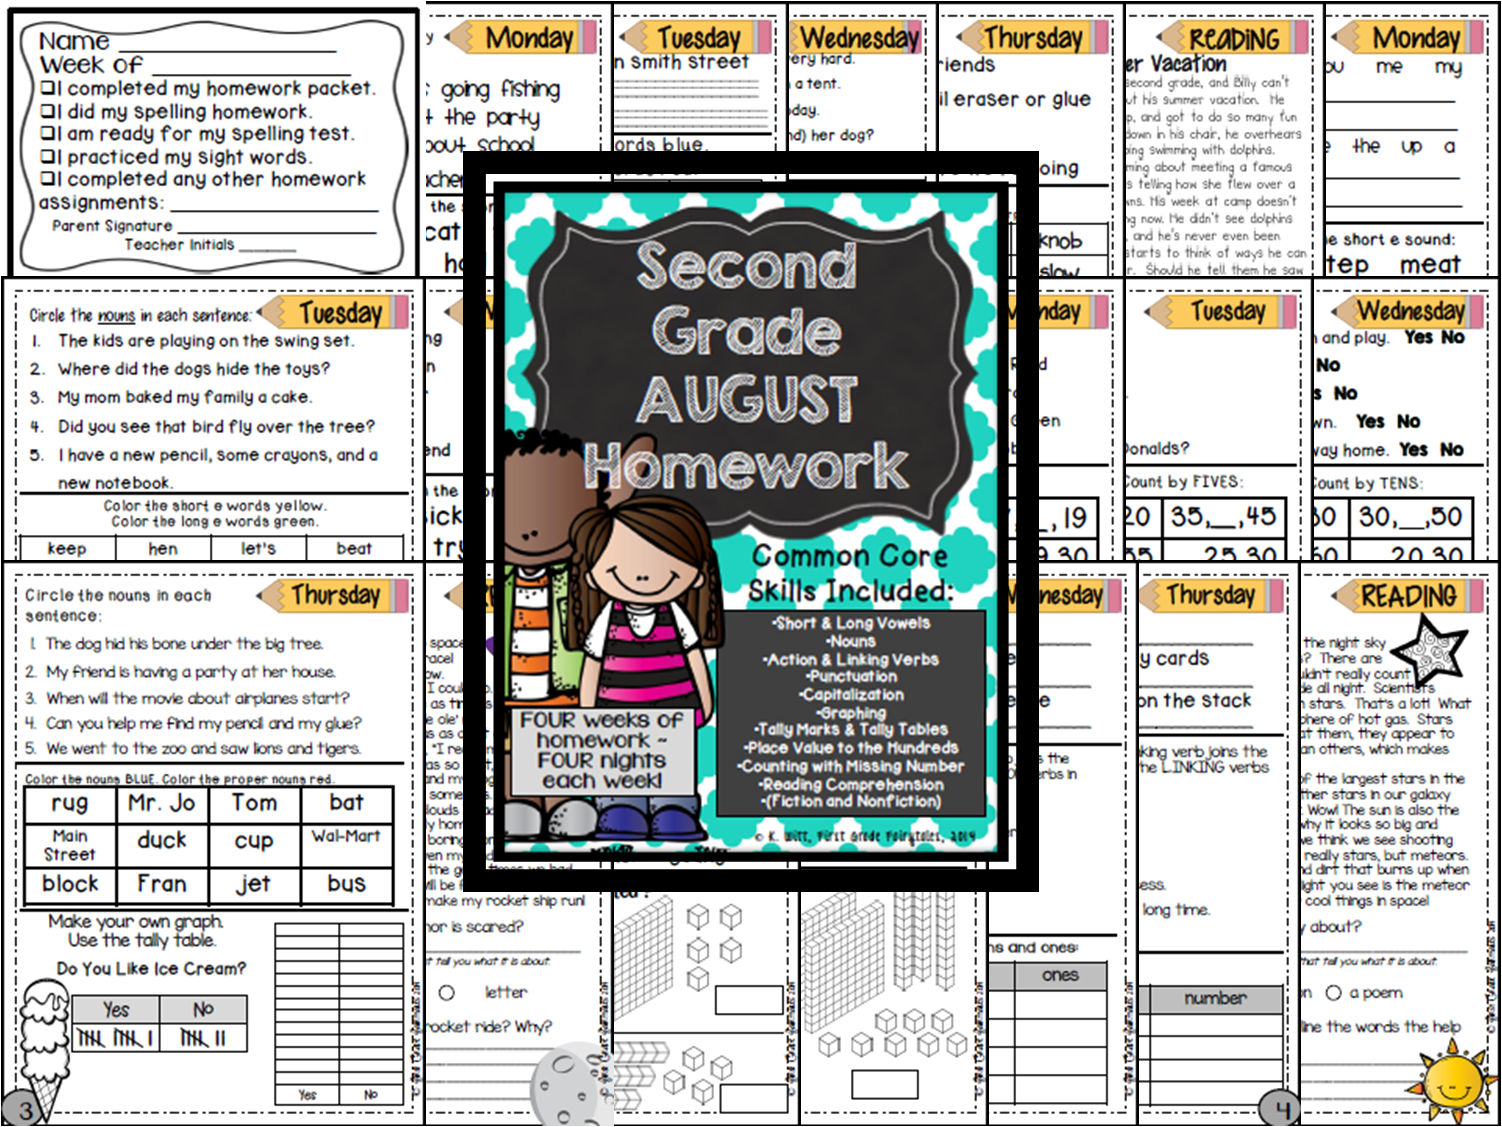 http://www.teacherspayteachers.com/Product/Second-Grade-Common-Core-Homework-August-1396462